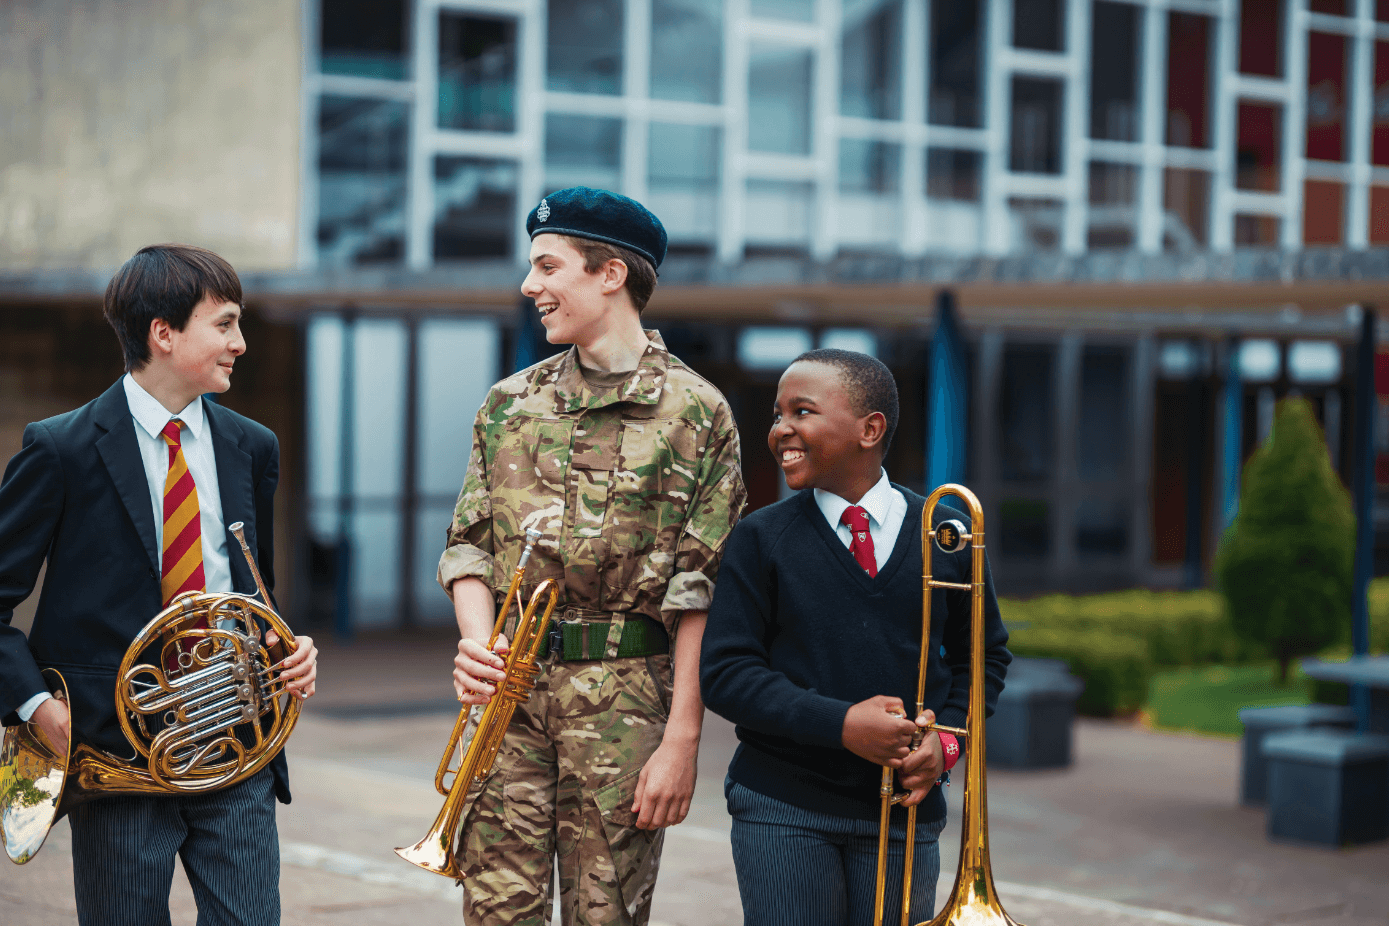 International schools in the UK: Building character through education